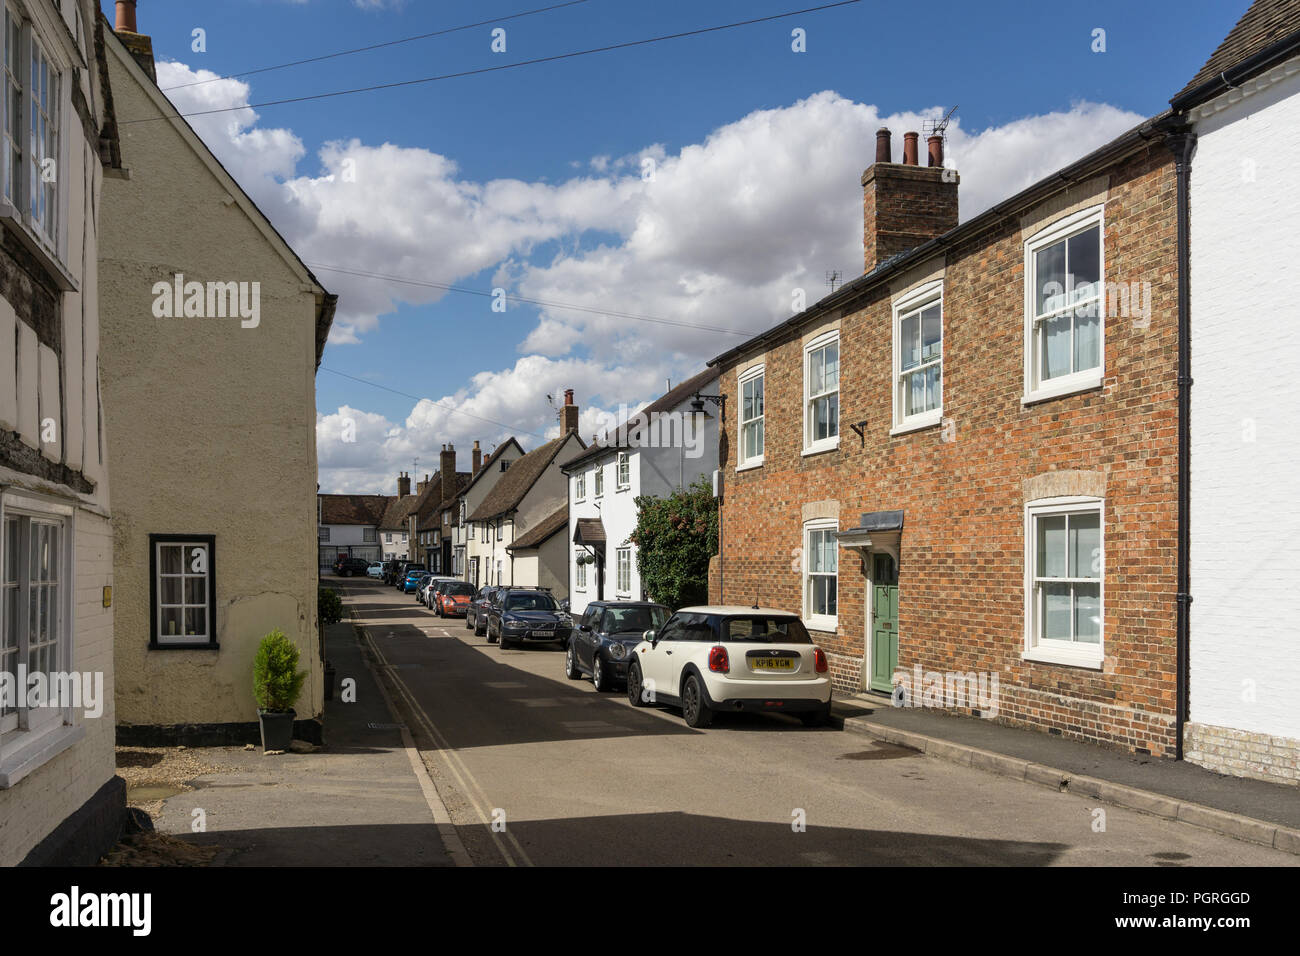 East Street, Kimbolton, Cambridgeshire, UK; a mix of older housing some dating back to Medieval times - Stock Image